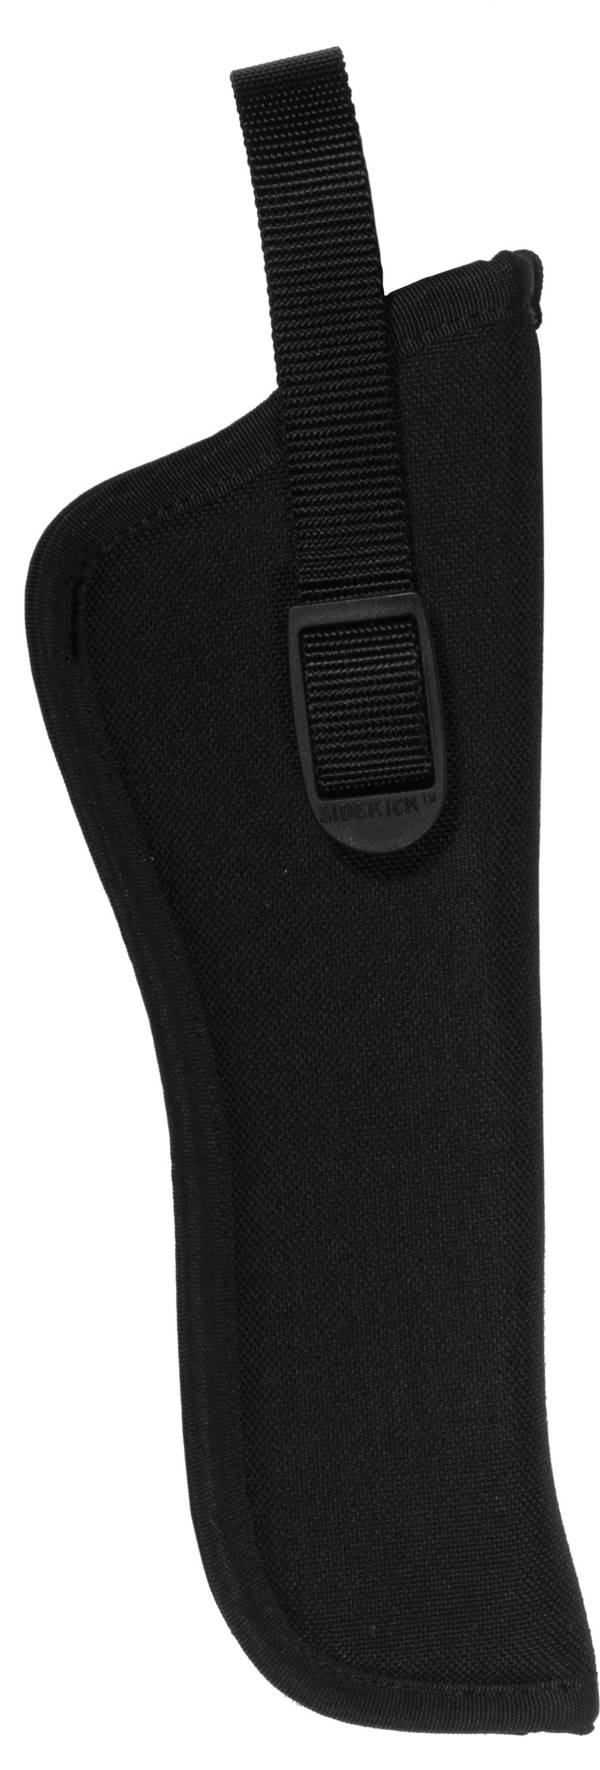 Uncle Mike's Sidekick Large Hip Holster product image